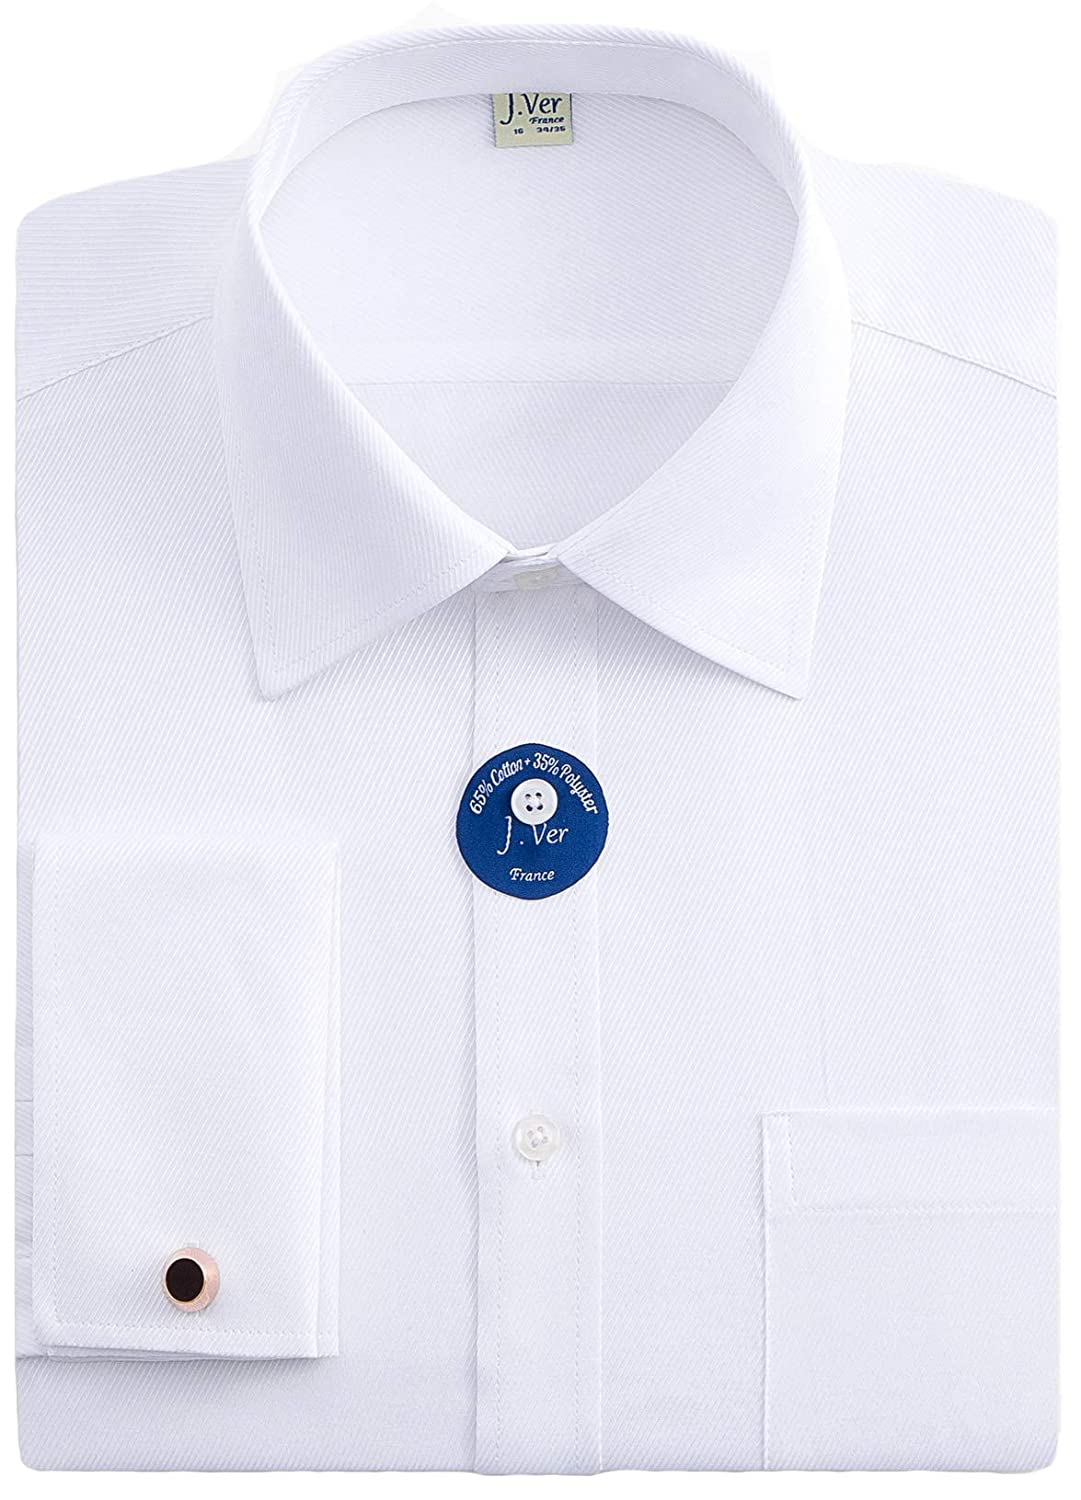 aa349991954 J.VER Men s Double Cuff Formal Dress Shirts Regular Fit Include Metal  Cufflinks Long Sleeve  Amazon.co.uk  Clothing